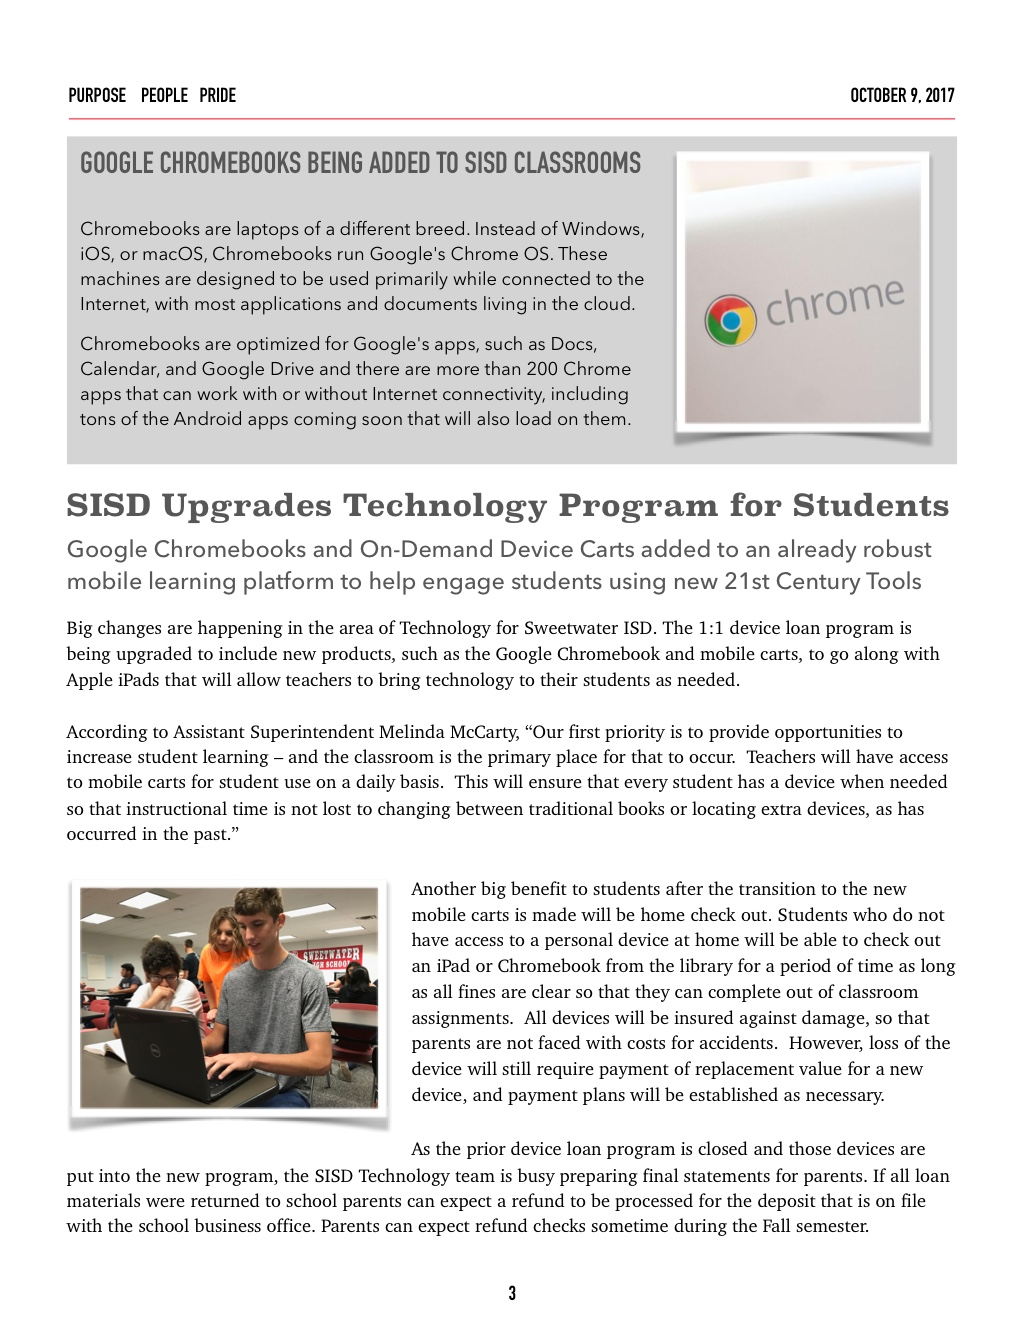 sweetwater isd s october newsletter now available online to read